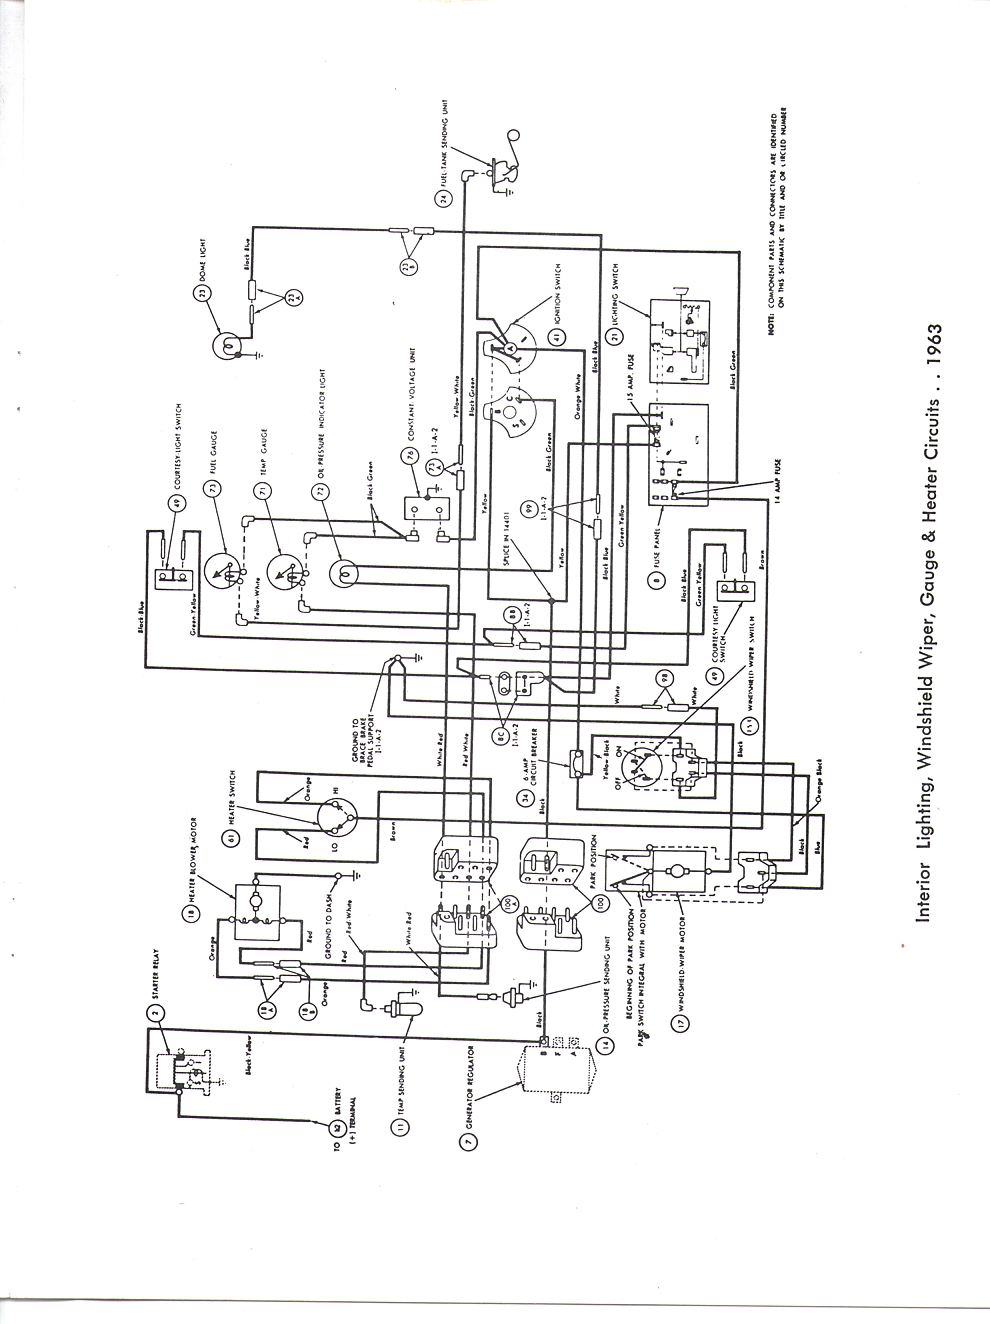 1996 jeep cherokee steering column wiring diagram